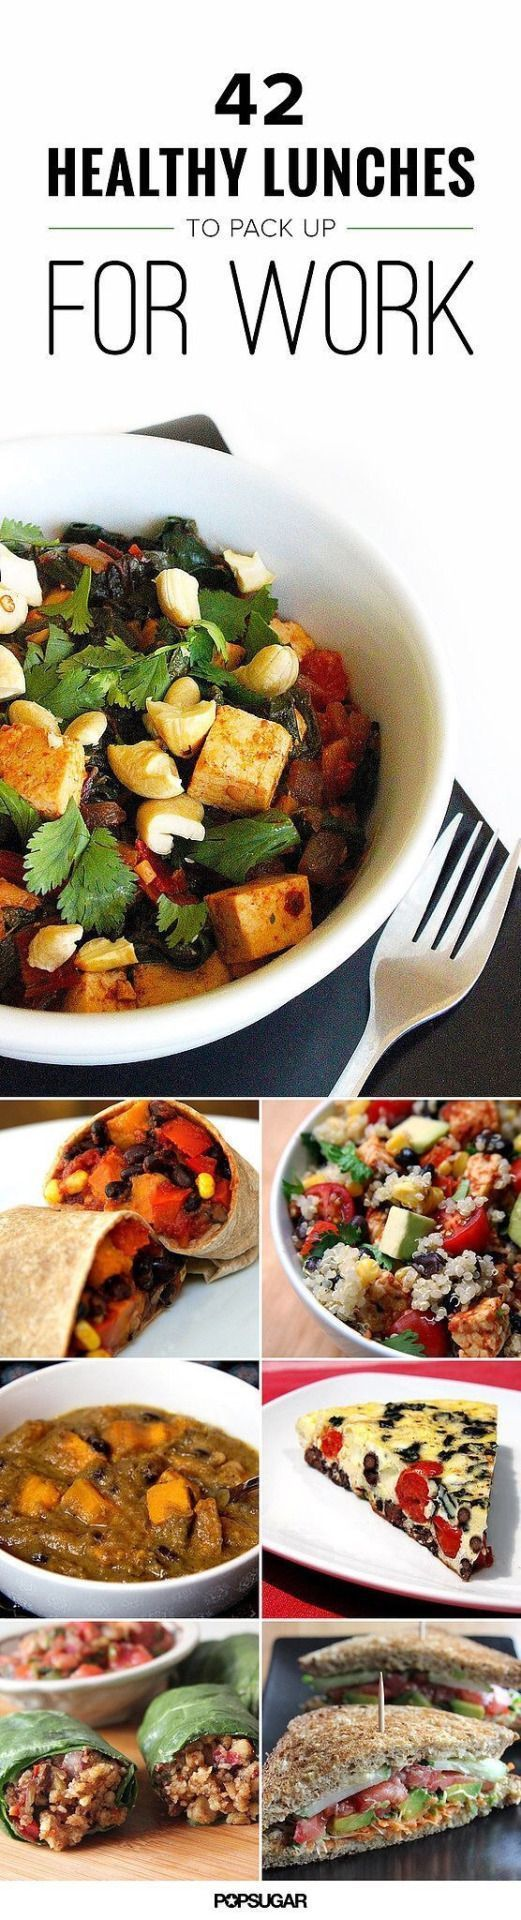 Bringing your own lunch to work keeps you in charge of the ingredients that fuel your body and helps you perform at your best both at work and in the gym. Regardless of your dietary limitations and preferences, (at least!) one of these 50 healthy recipes will fit the bill and make its way into your lunchtime rotation.